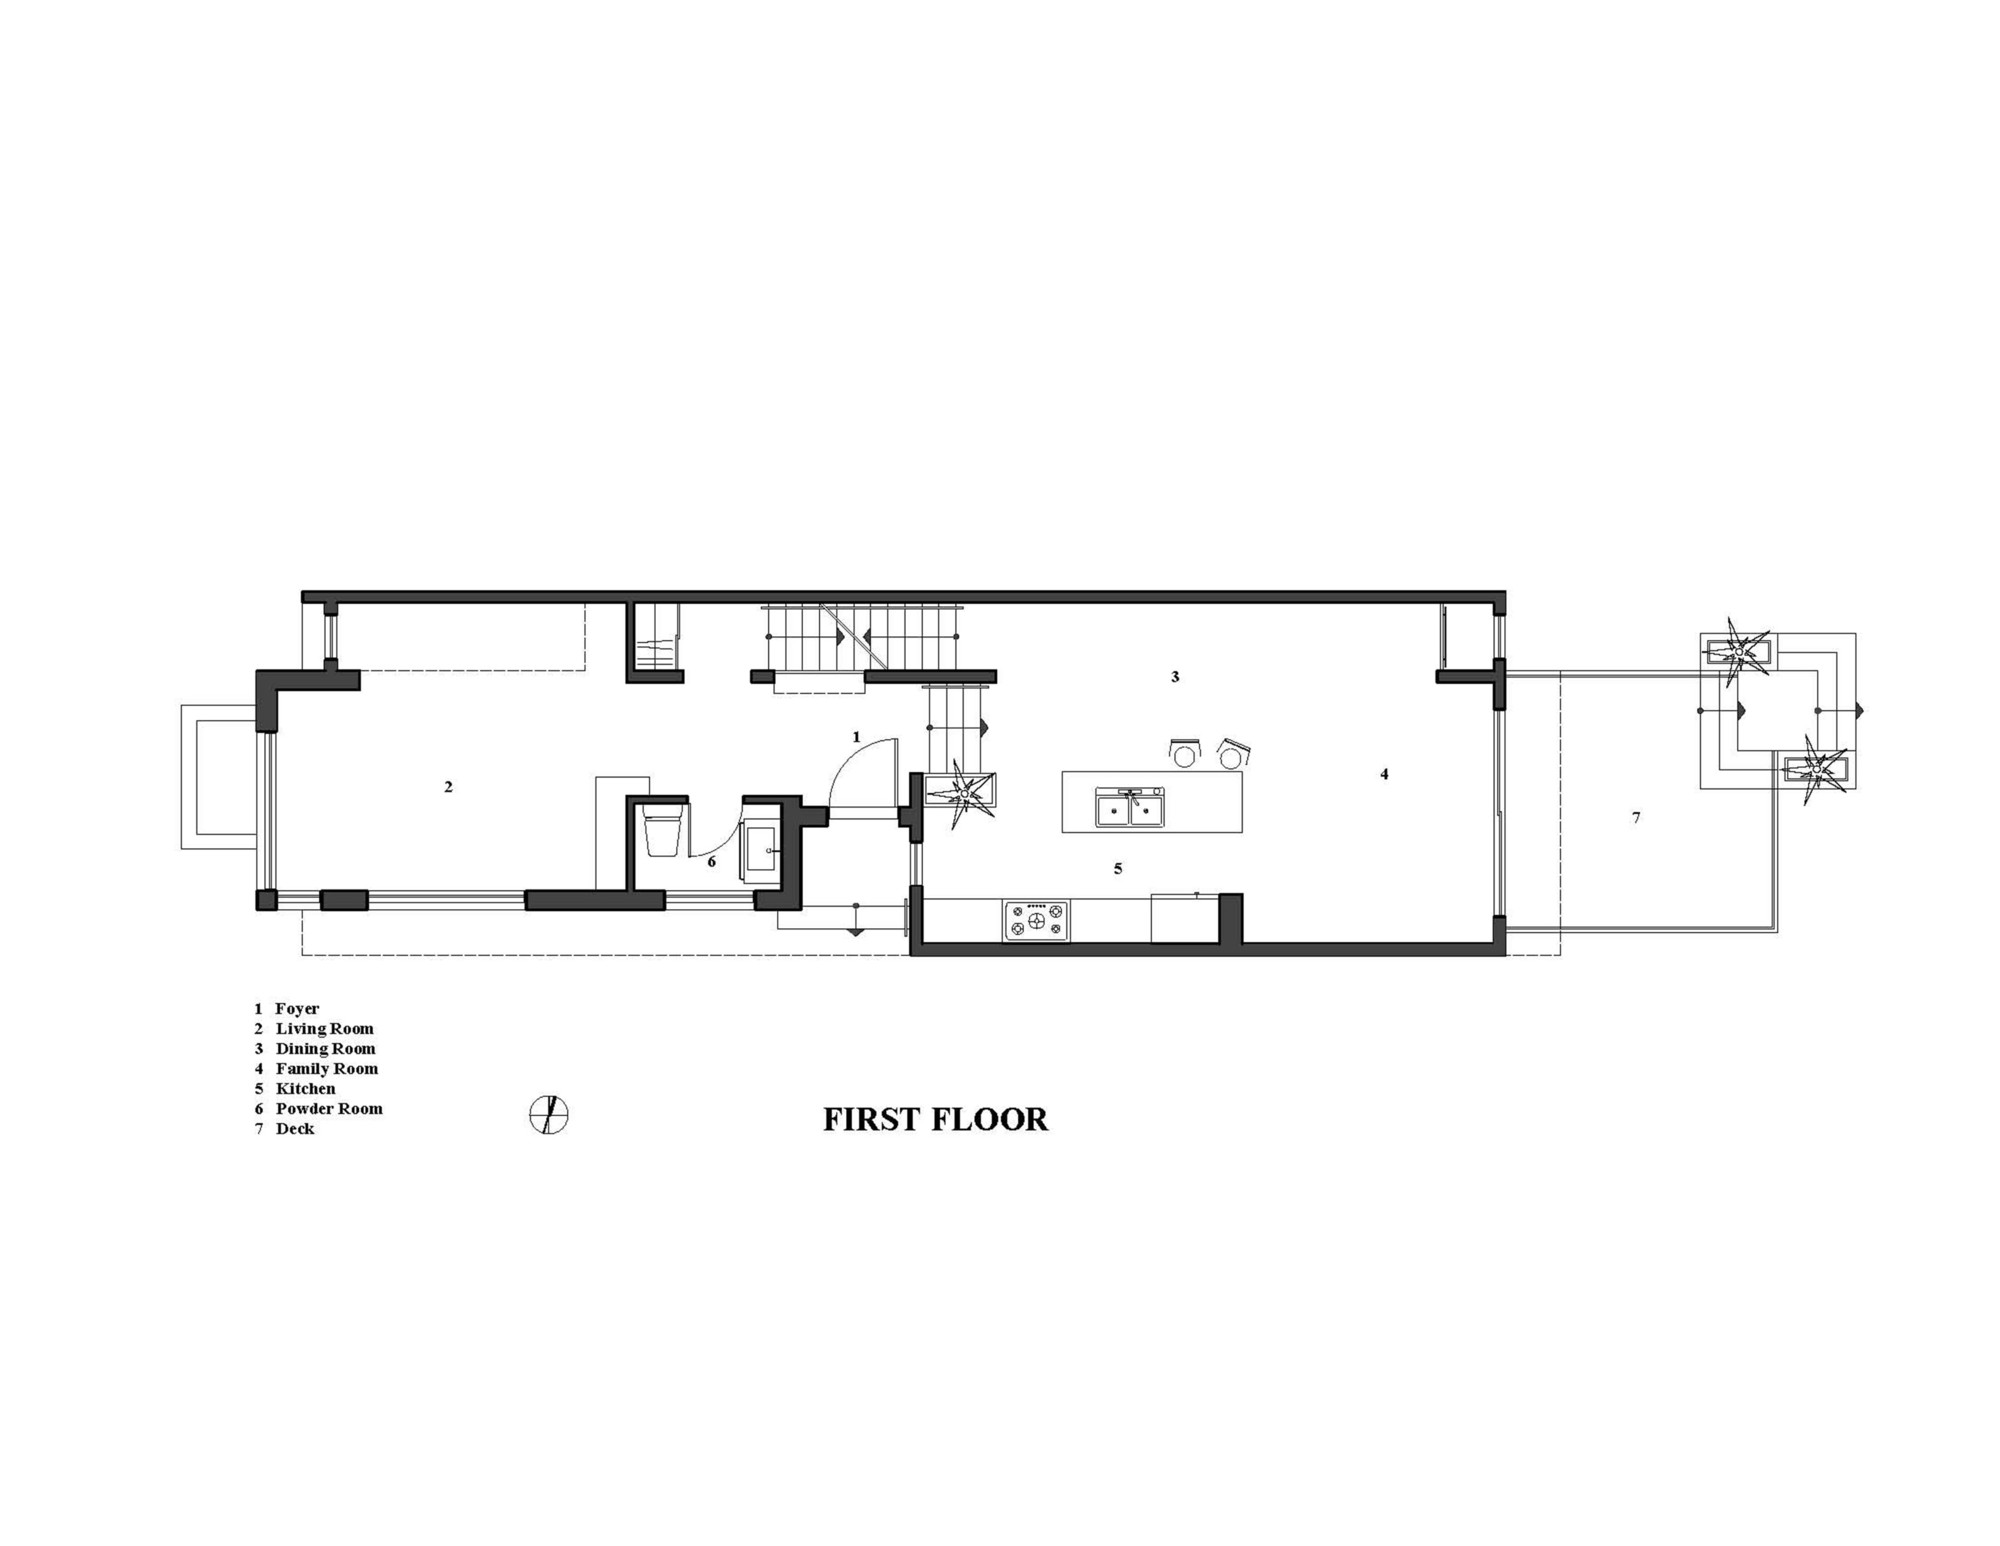 white house floor1 green roomjpg. The Linear House,Floor Plan White House Floor1 Green Roomjpg L